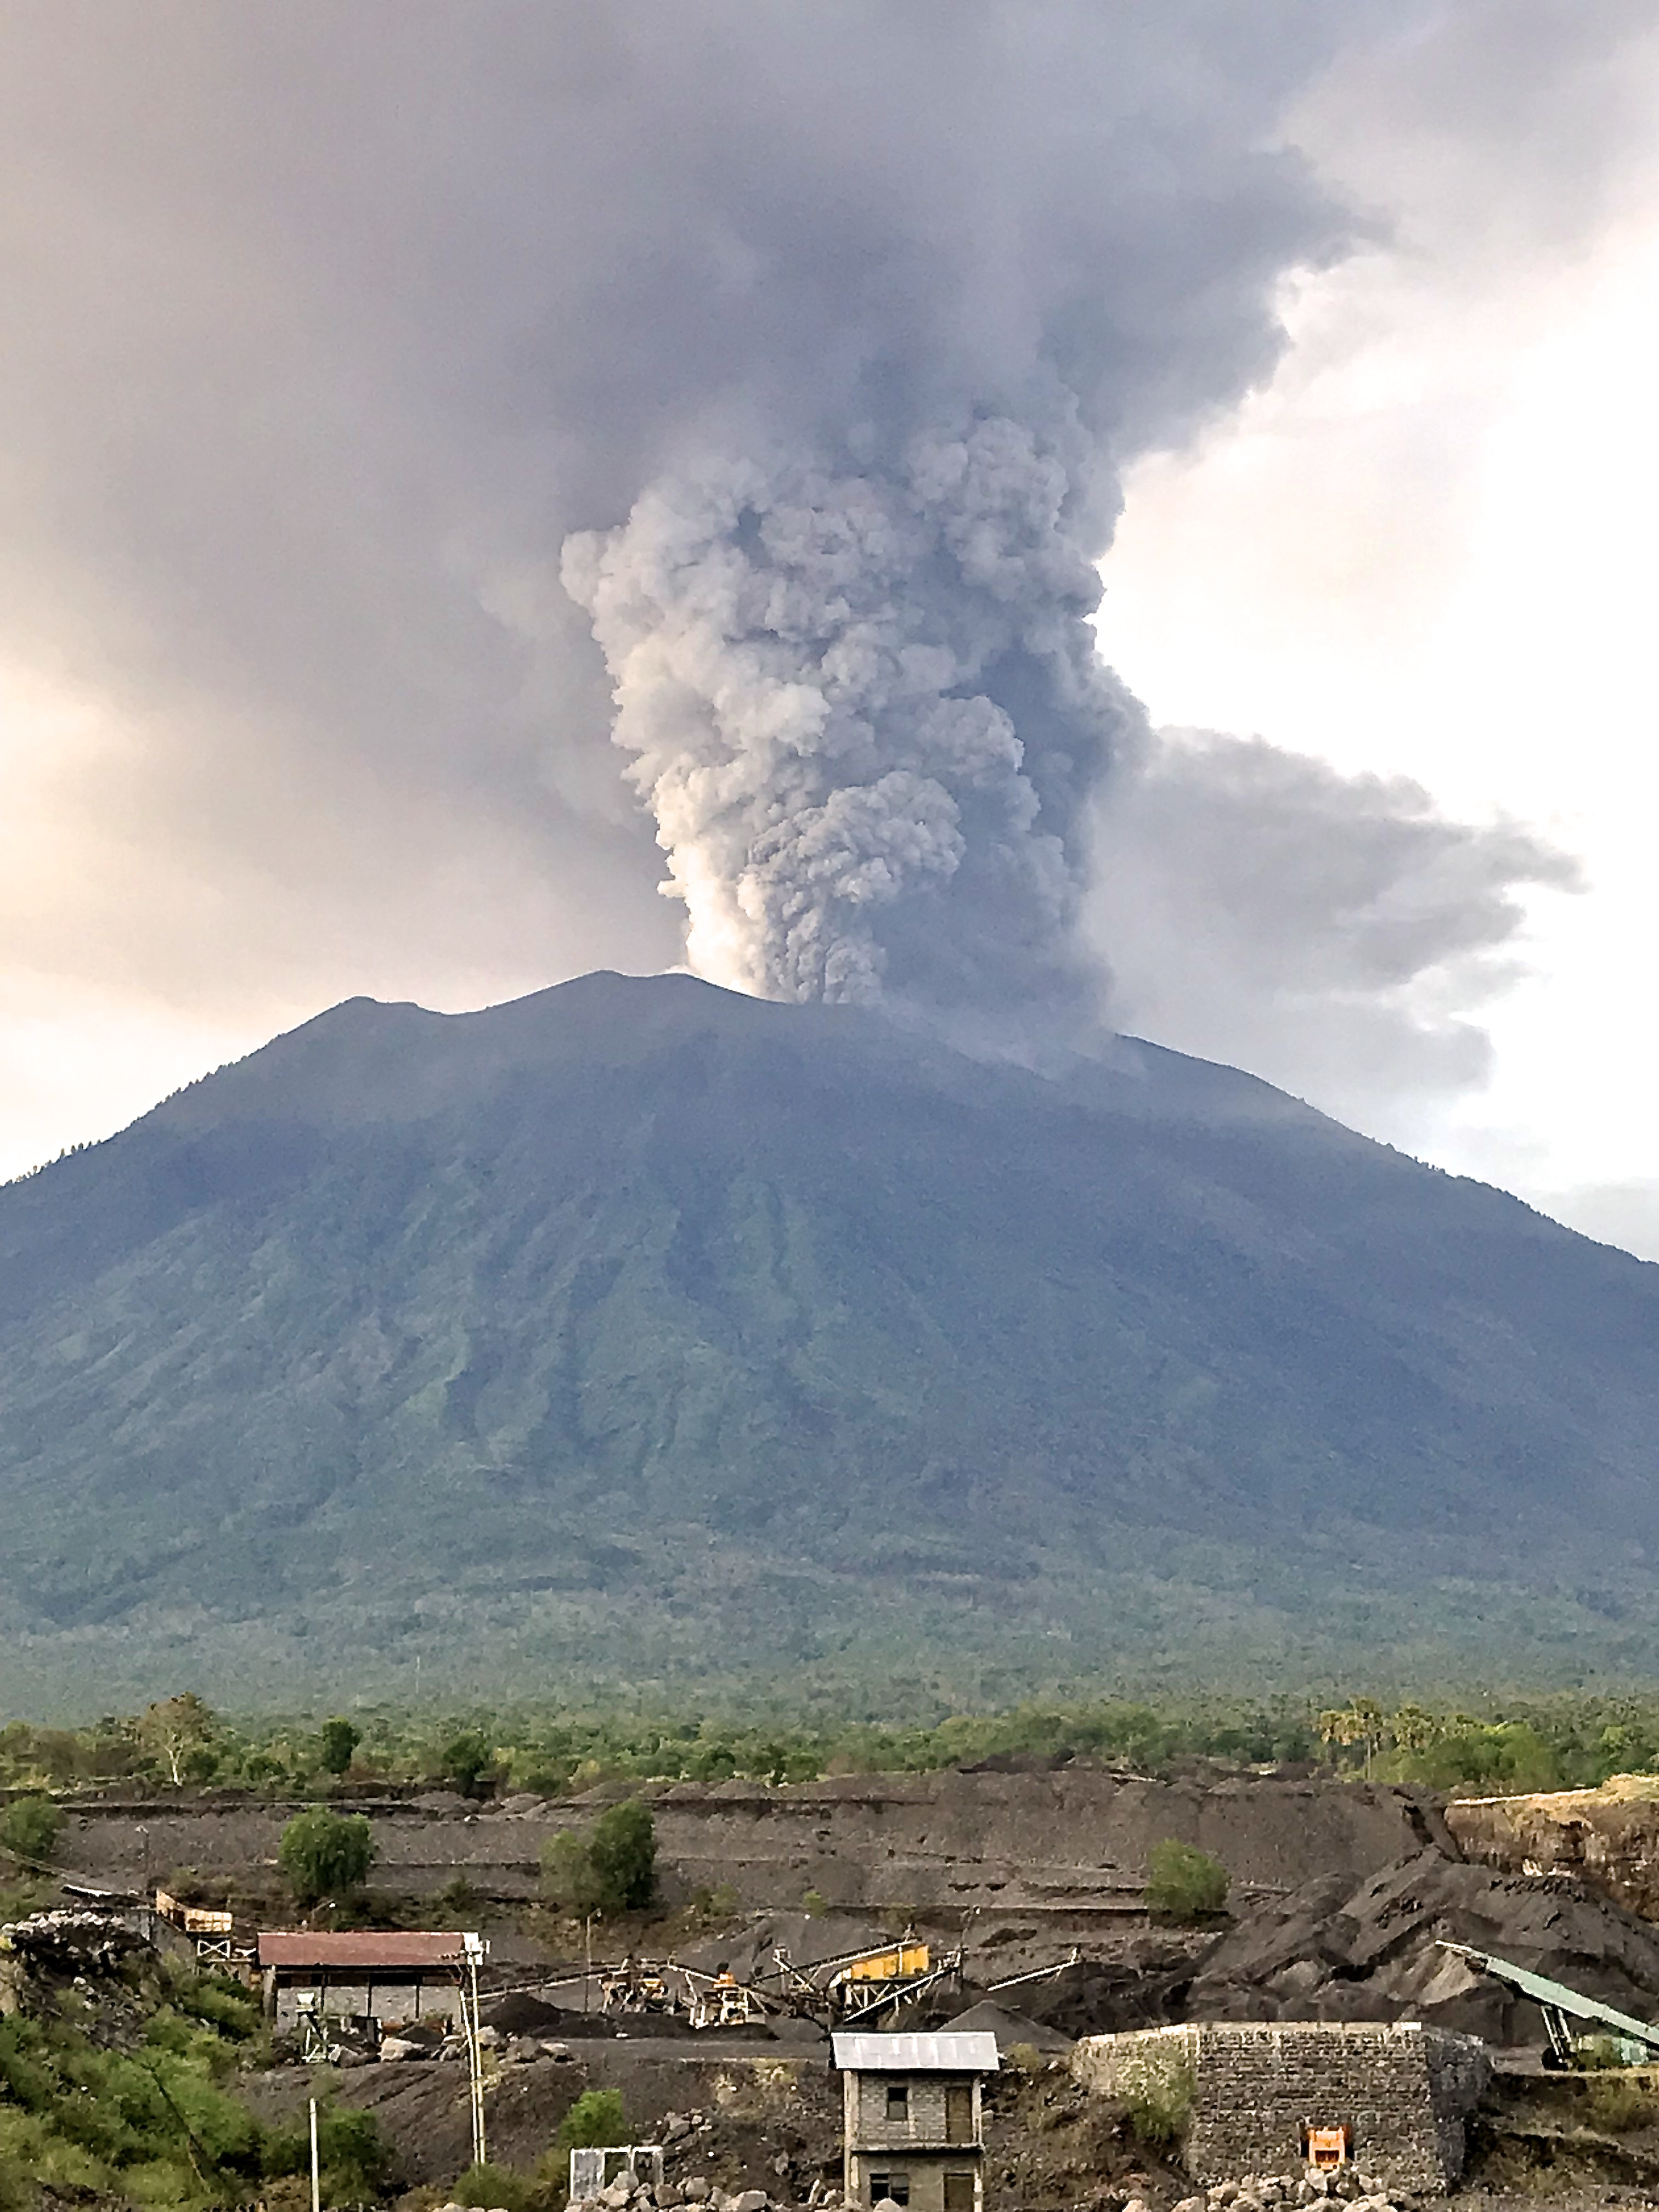 Visualizing Risk: Mt. Agung Bali, Indonesia